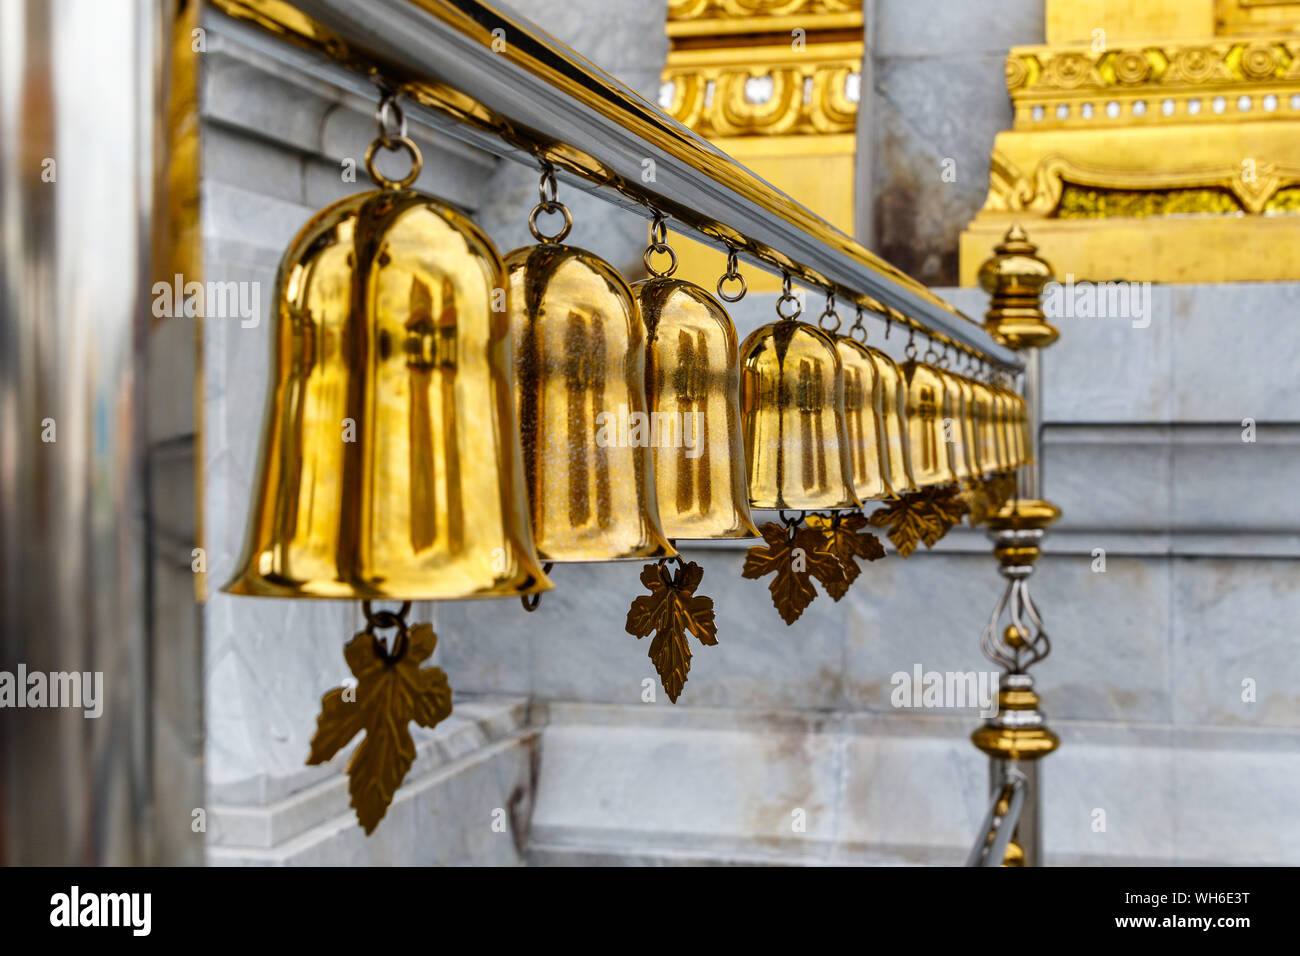 Golden bells at Buddhist temple Wat Traimit, Bangkok, Thailand. Stock Photo